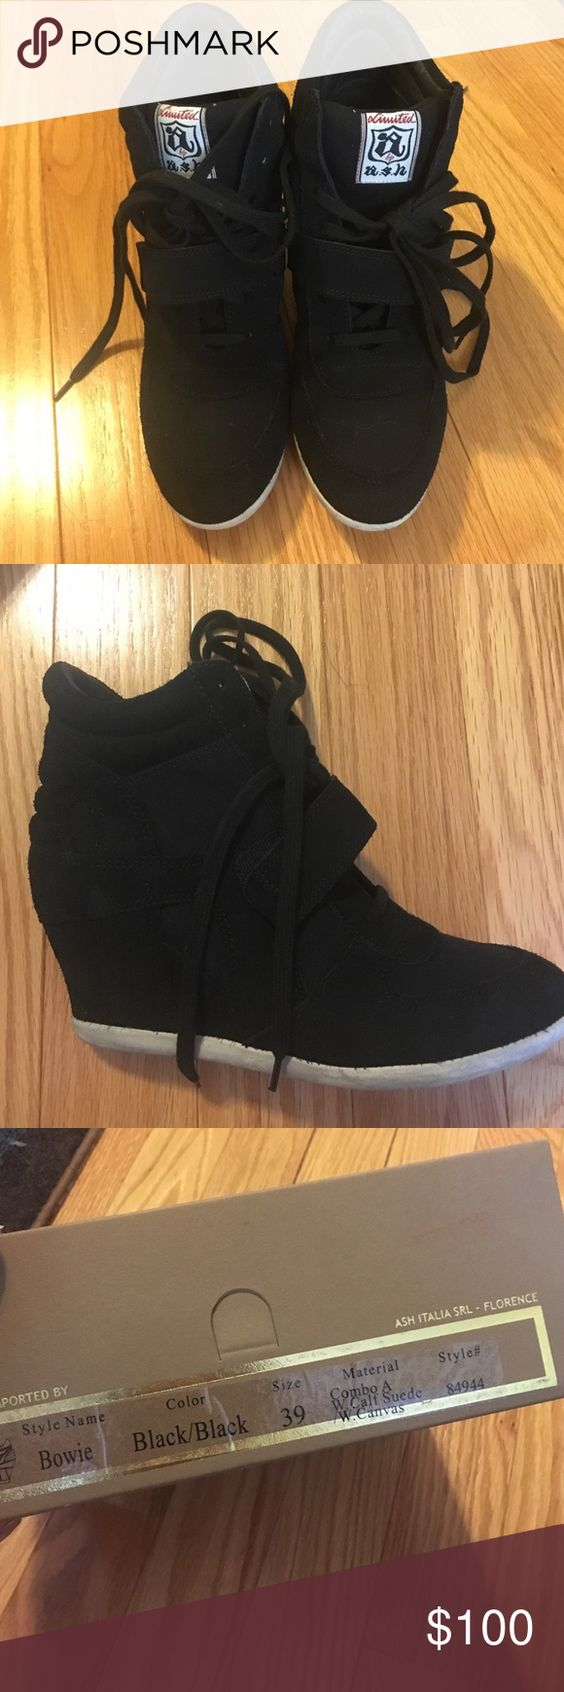 ASH bowie black suede wedge sneakers almost brand new condition. Ash Shoes Sneakers